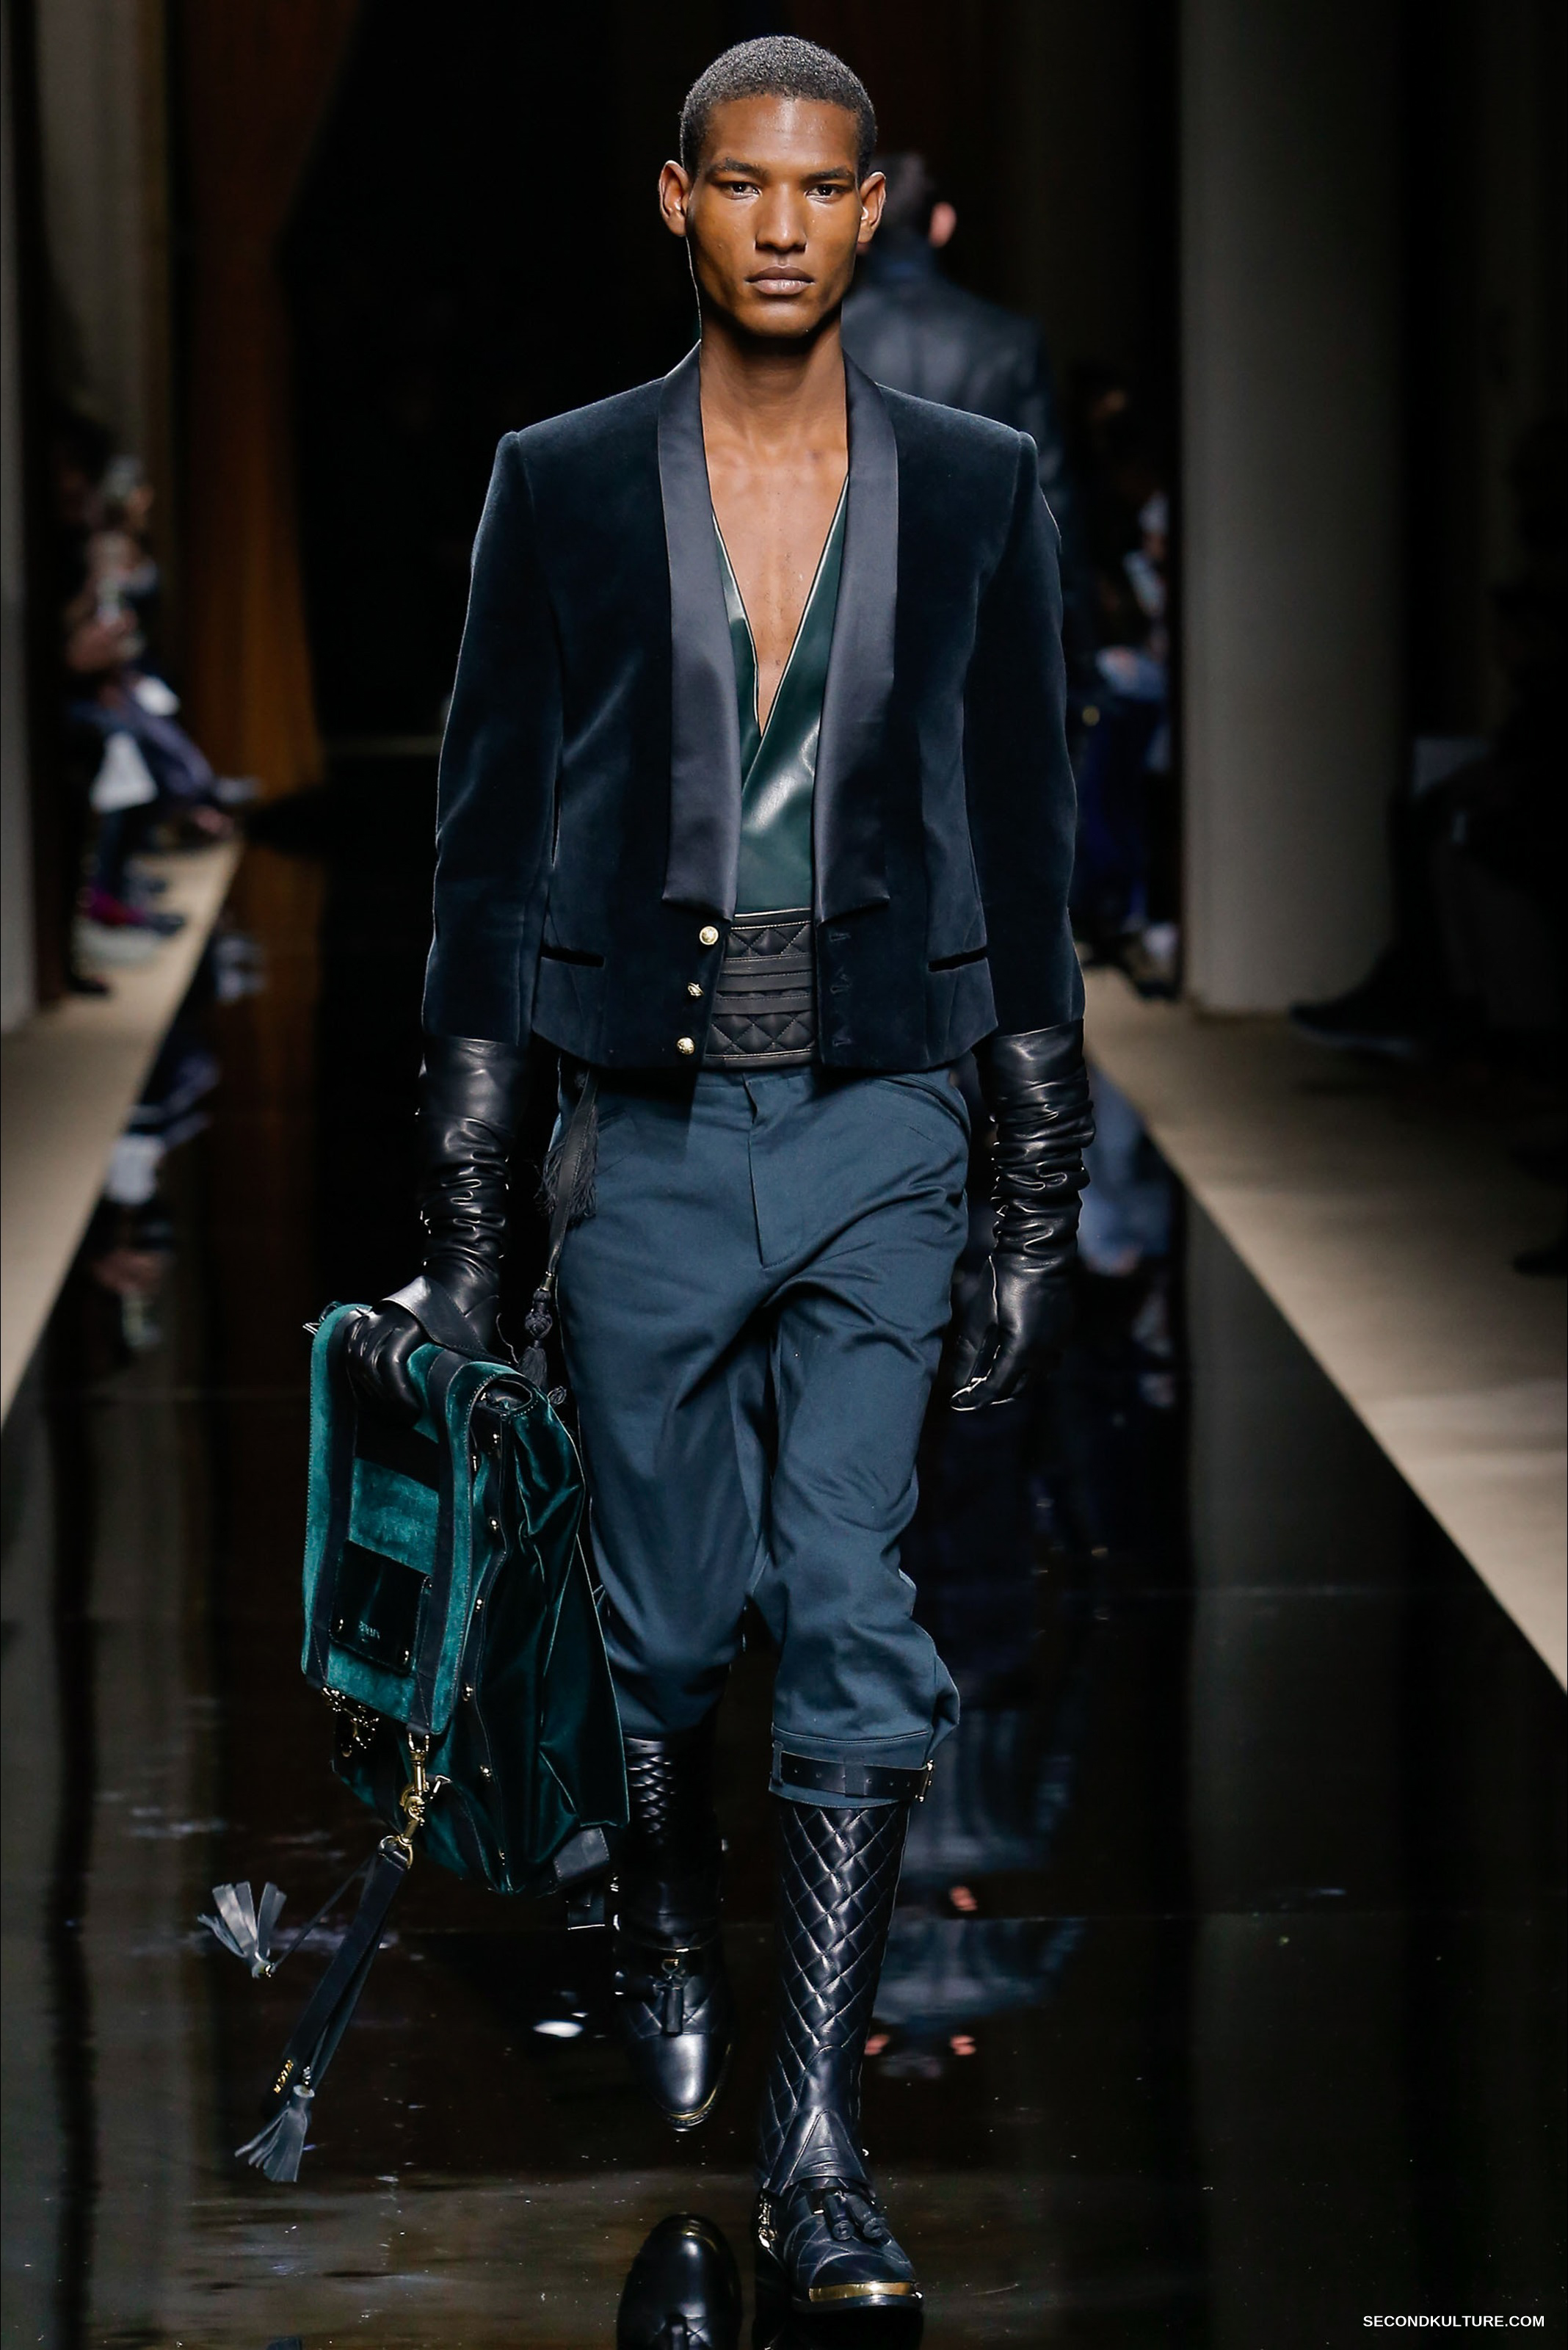 Balmain Fall Winter 2016 Menswear - Look 9/63